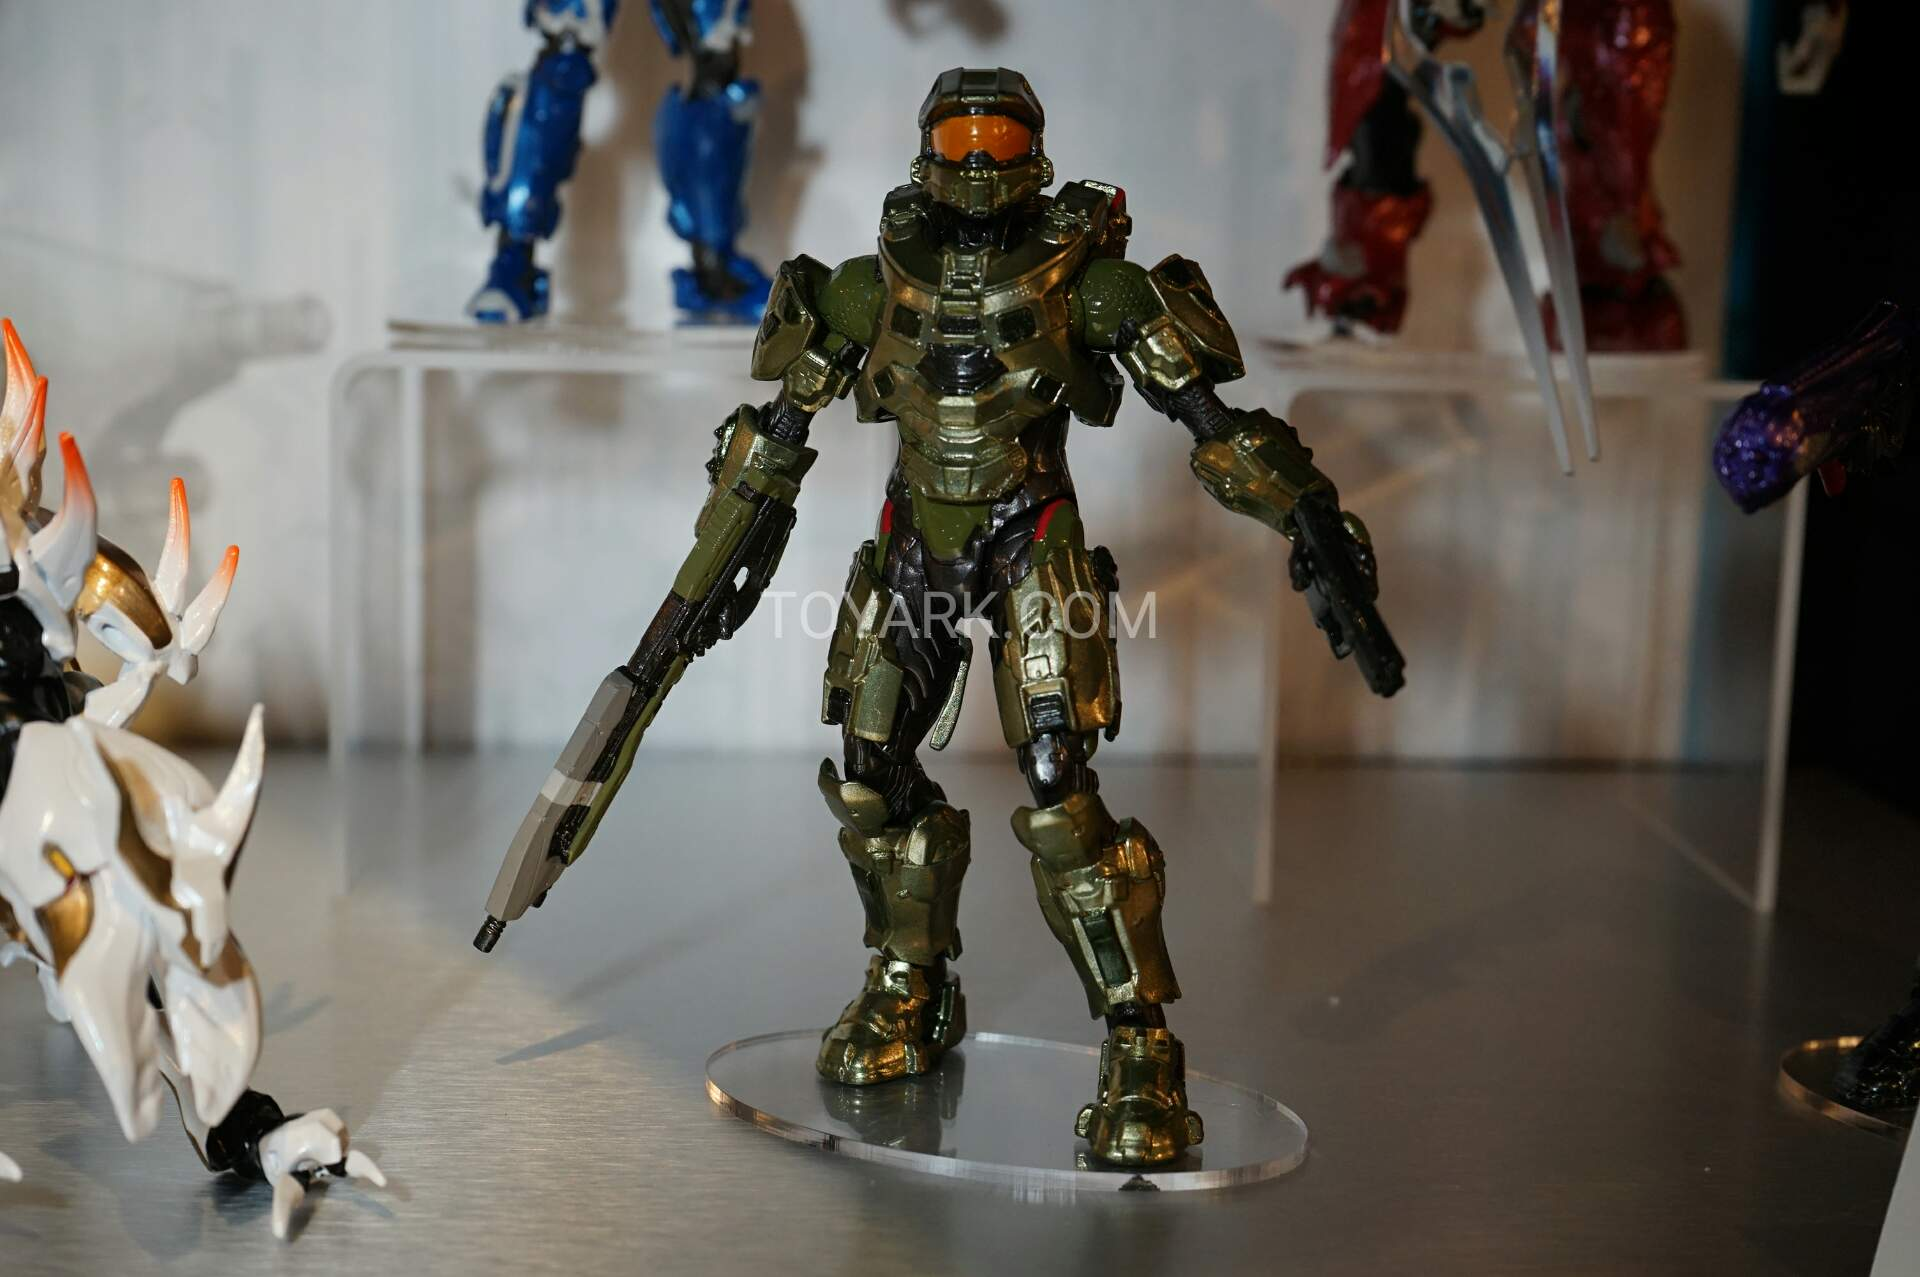 Halo Toys: By Mattel - Page 2 - The Fwoosh Forums